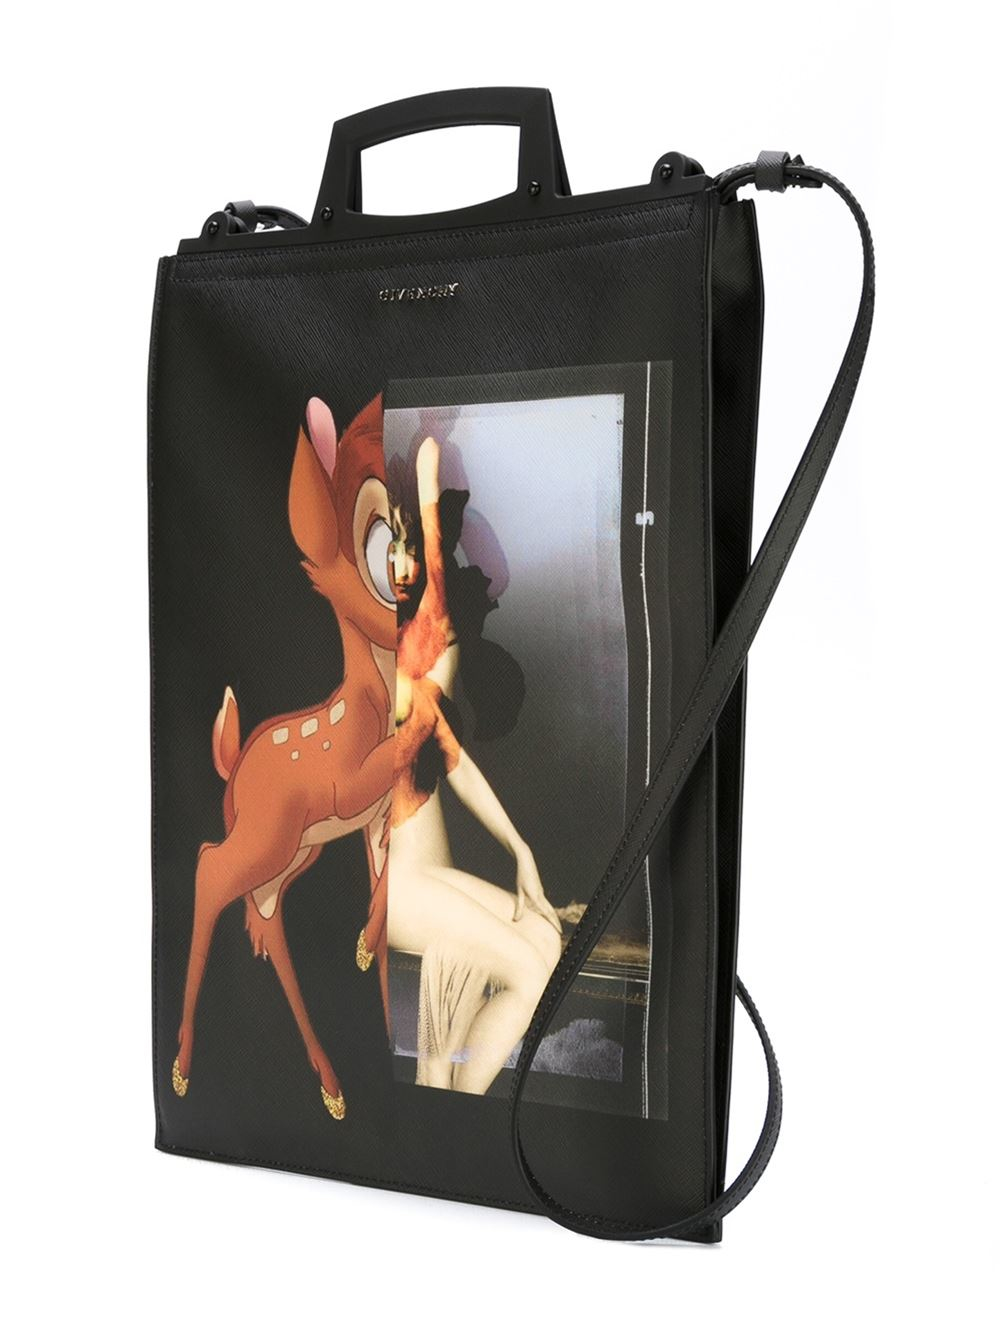 Givenchy Cotton Medium 'rave' Bambi Tote in Black